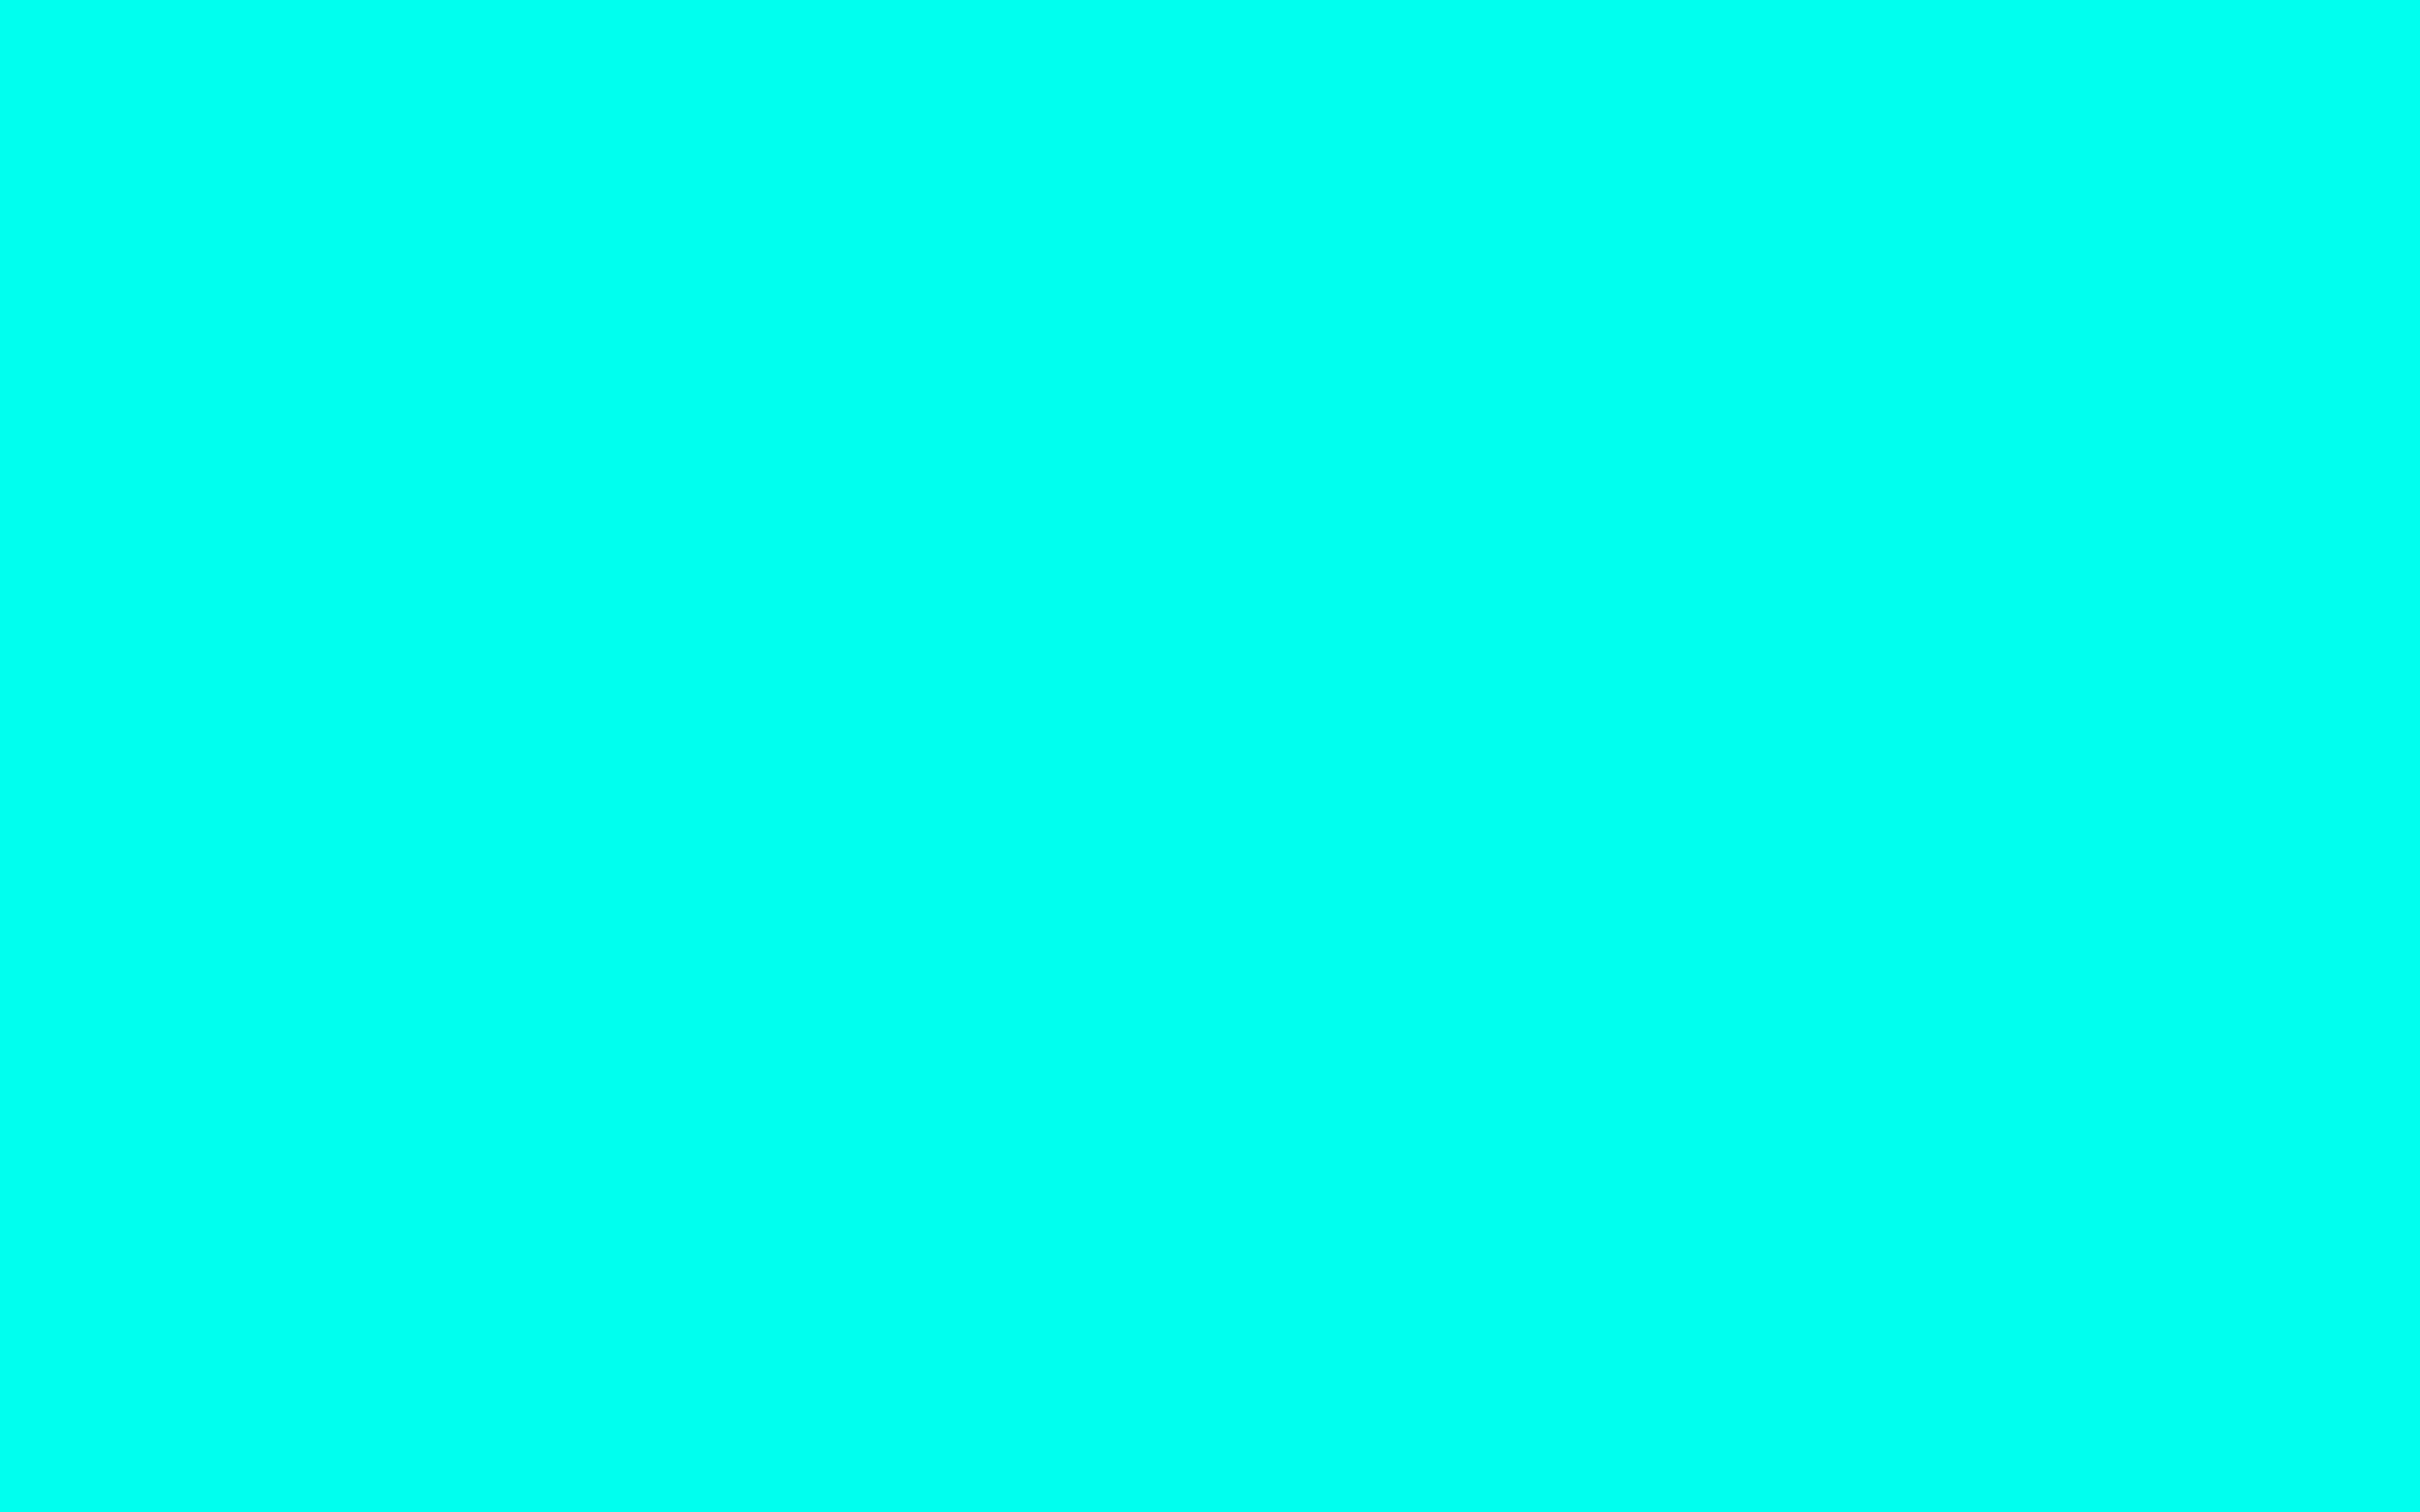 2880x1800 Turquoise Blue Solid Color Background